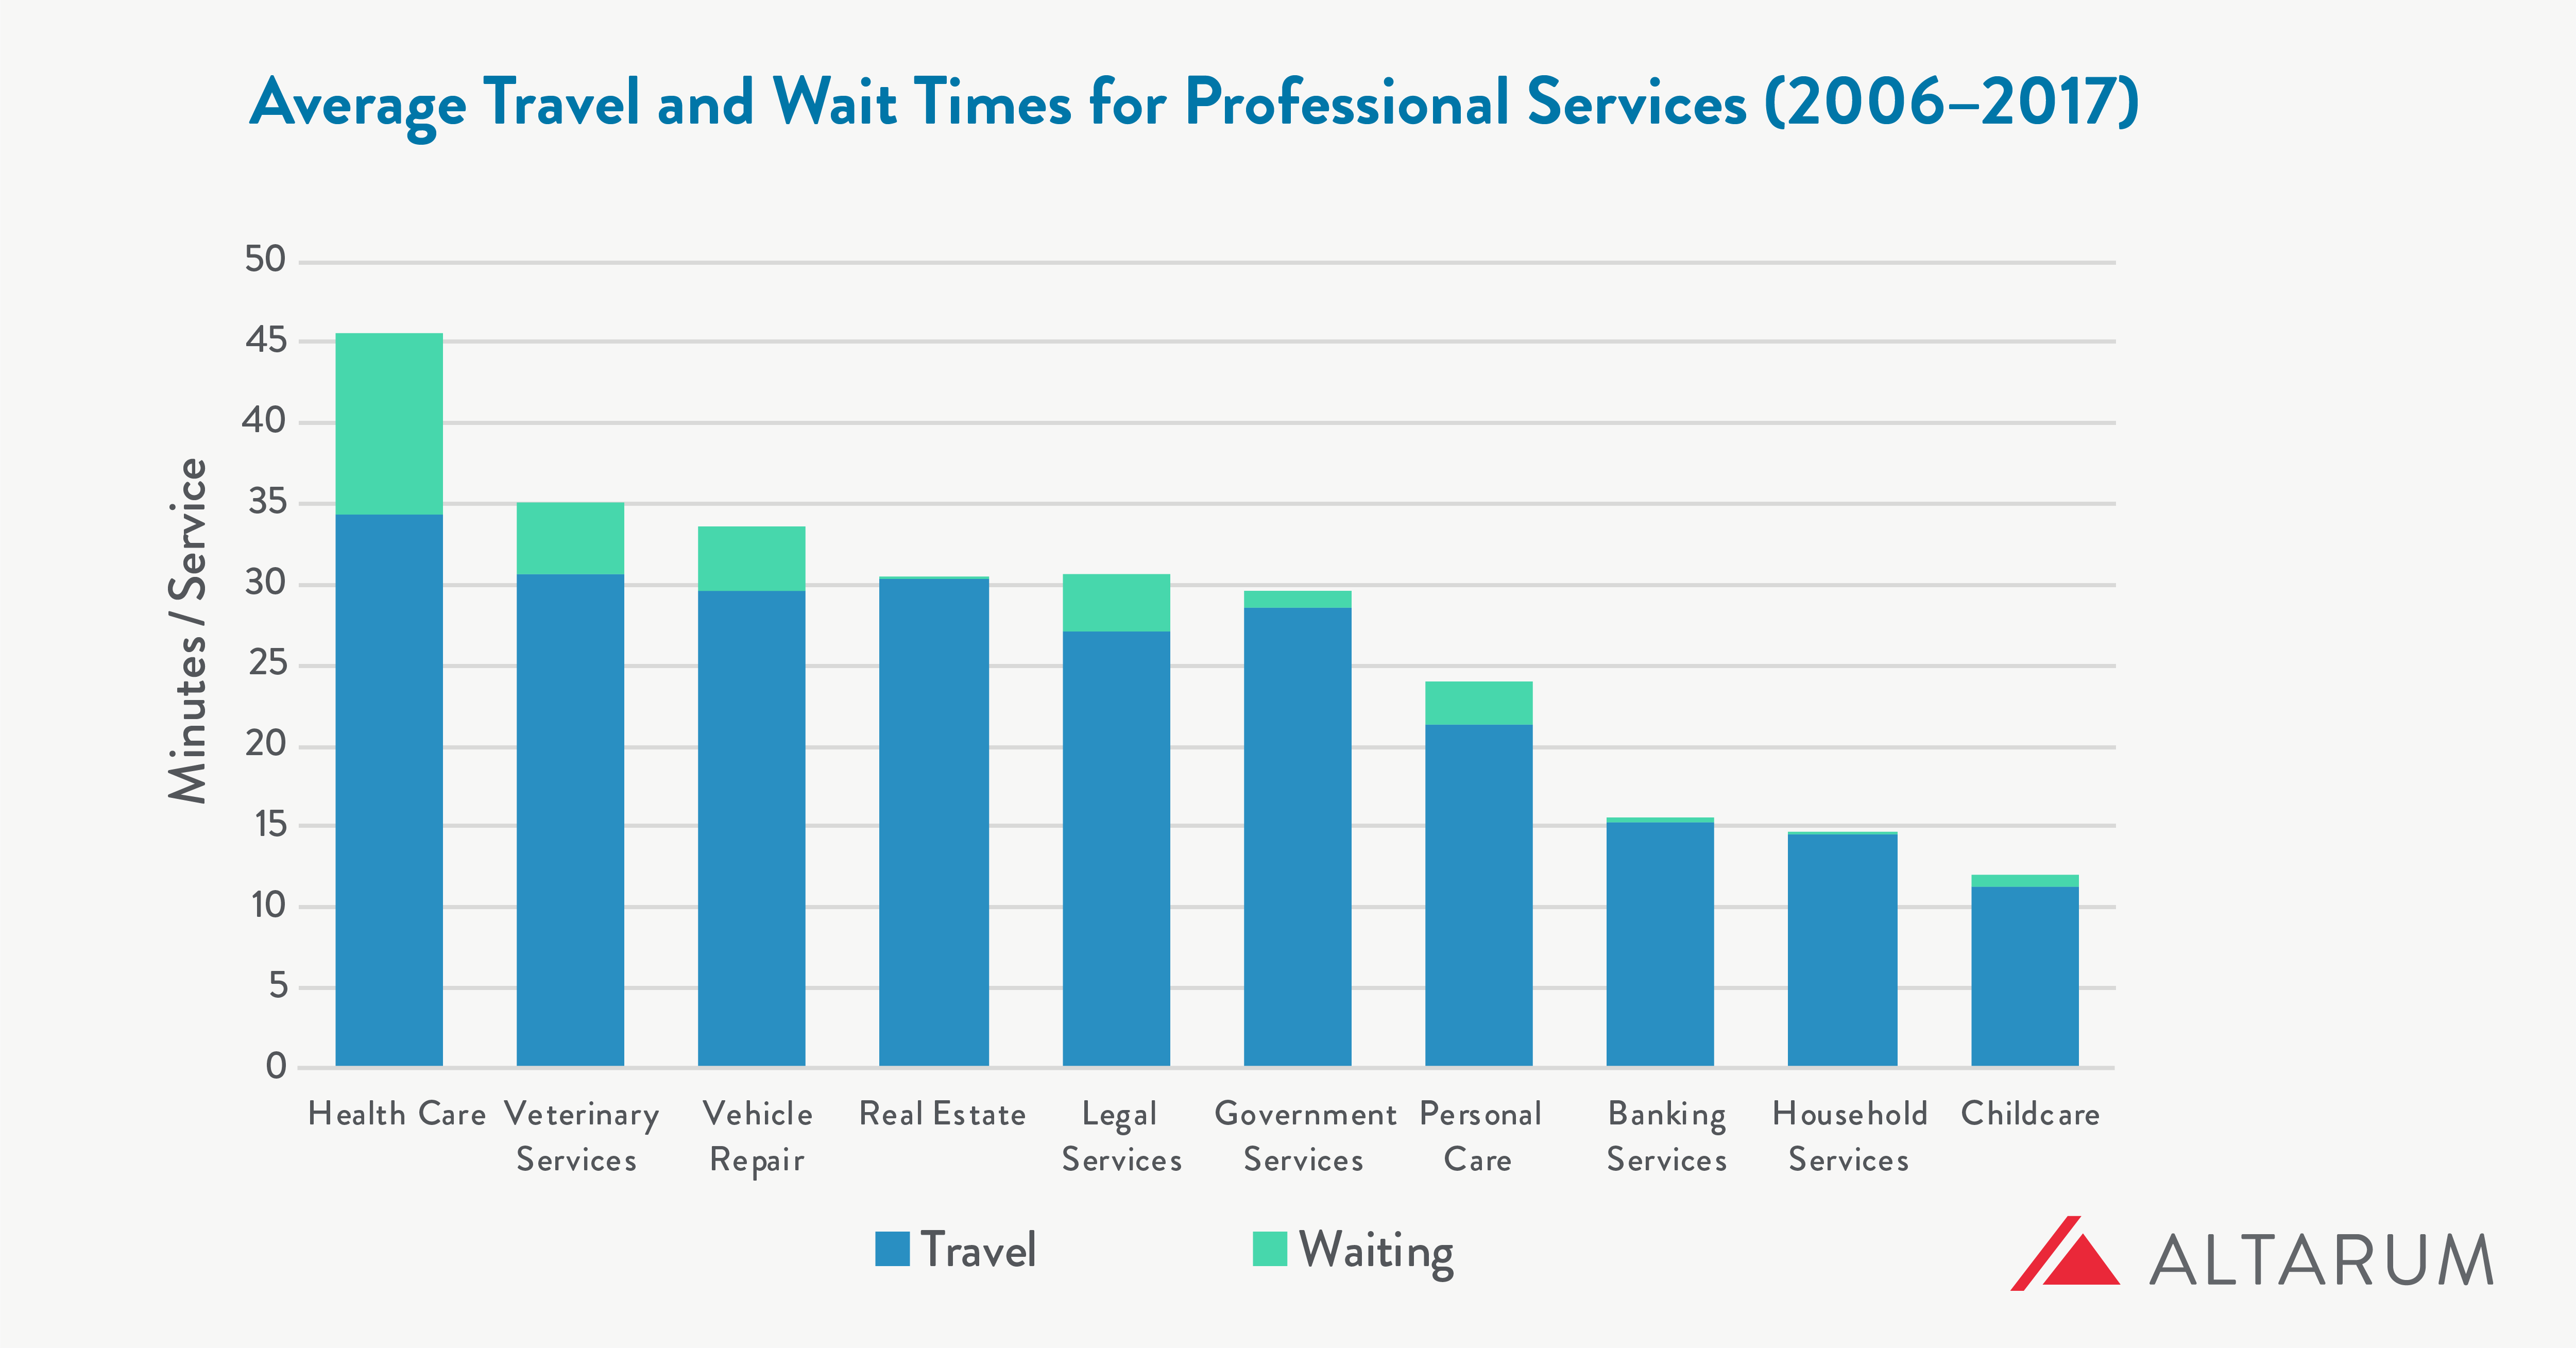 Chart showing average travel and wait times for professional services